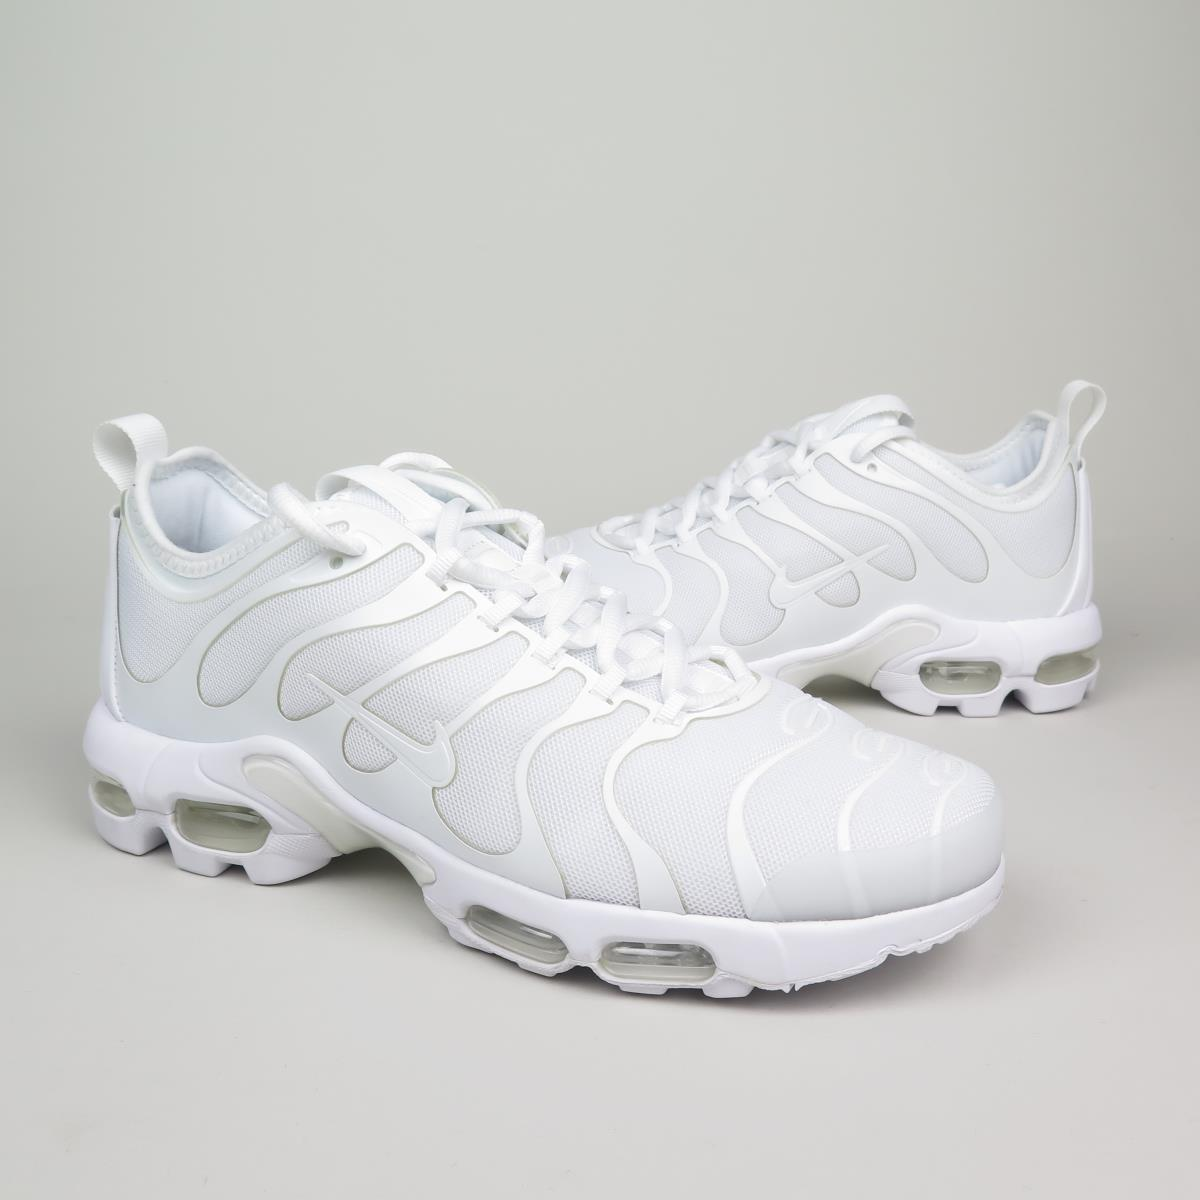 nike air max tn bianche in pelle